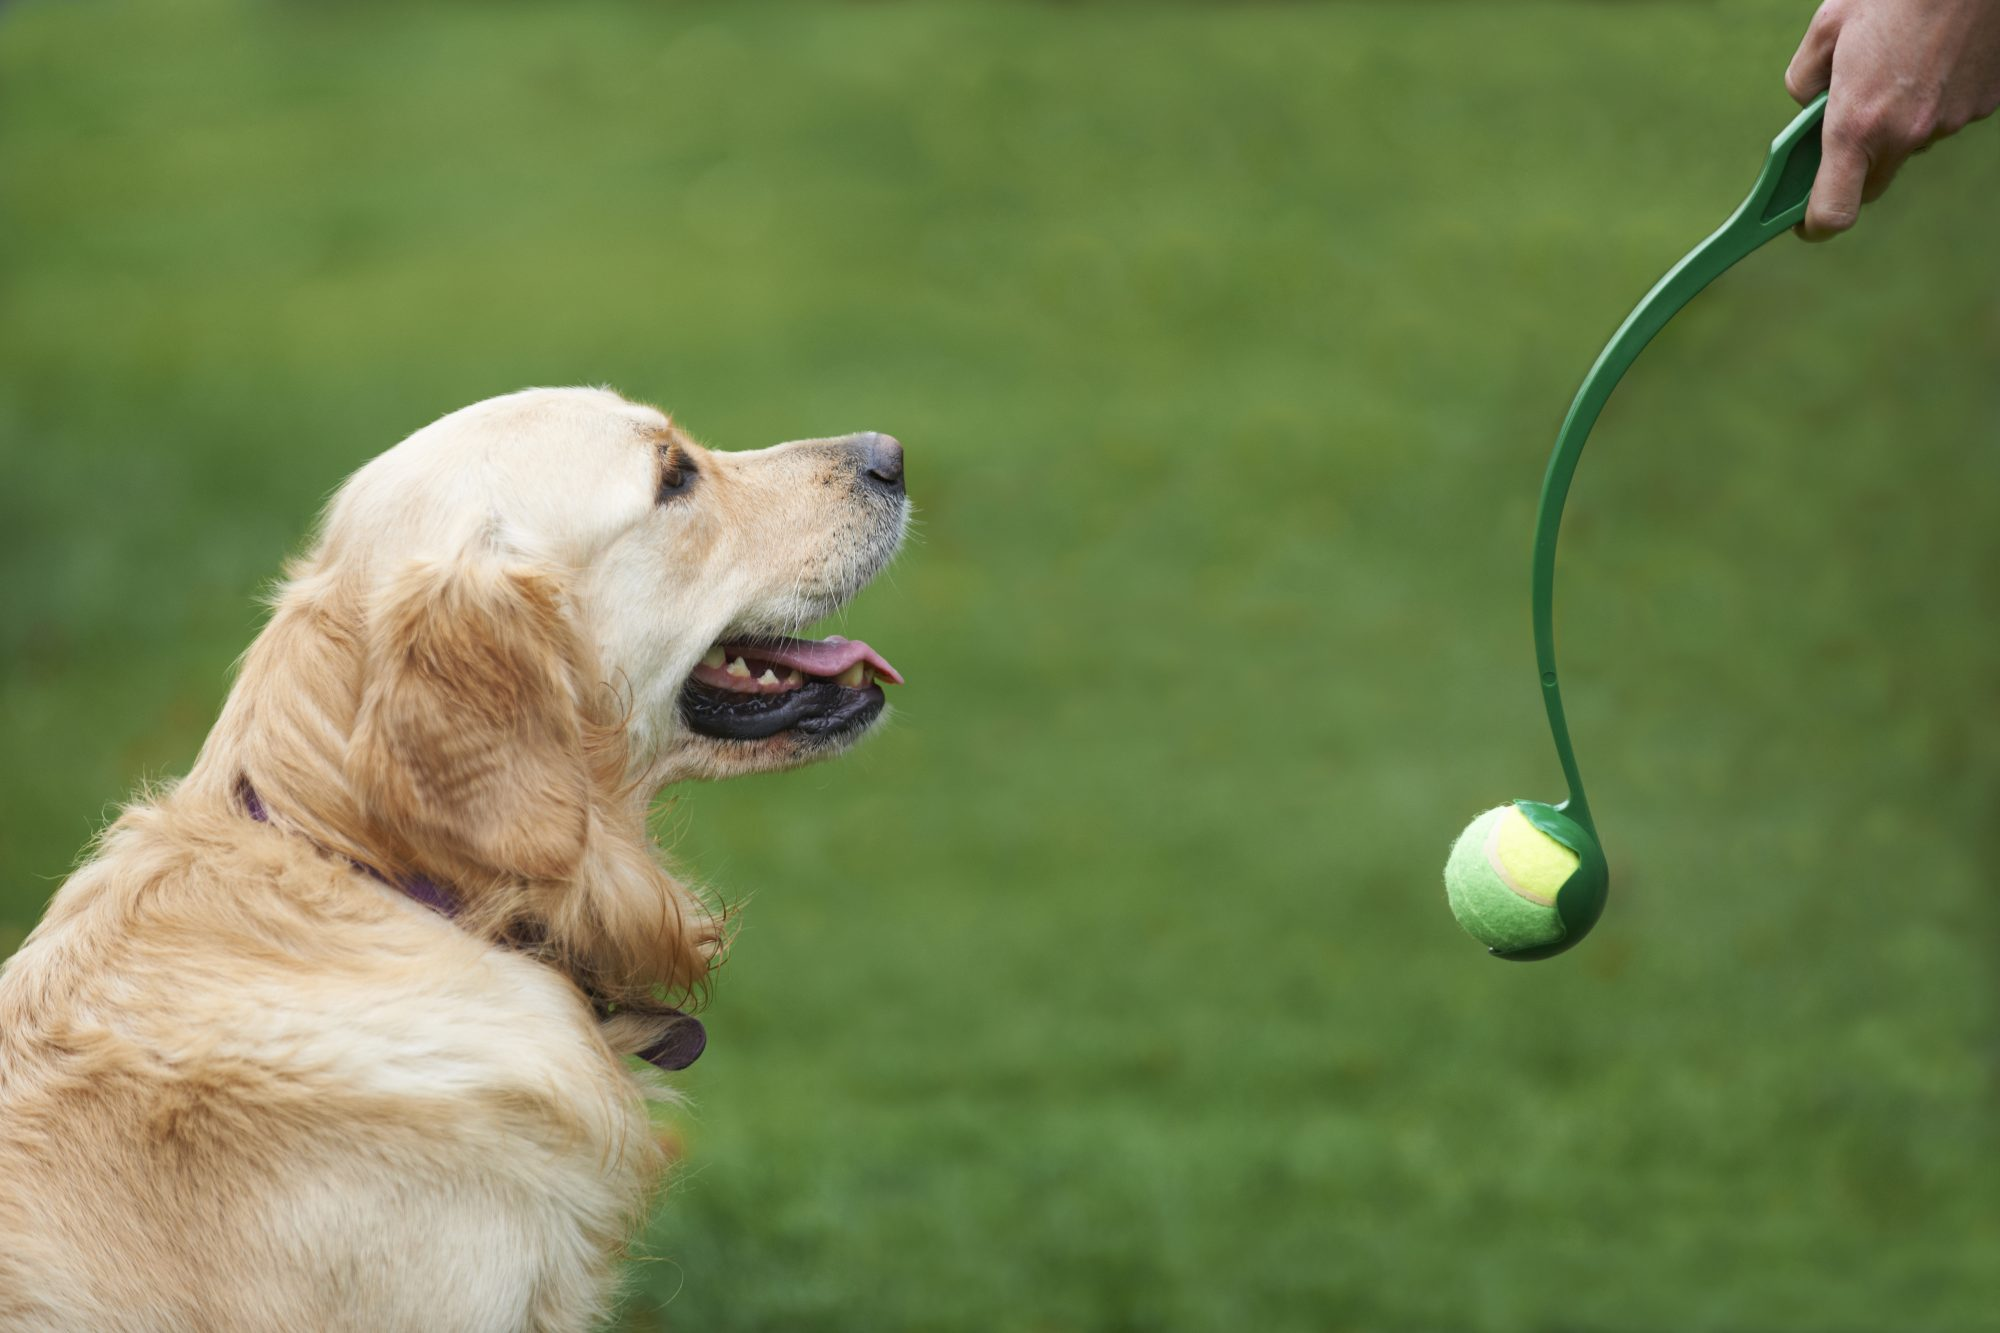 Long-Range Ball Throwers are Damaging Dogs' Joints, Vet Warns